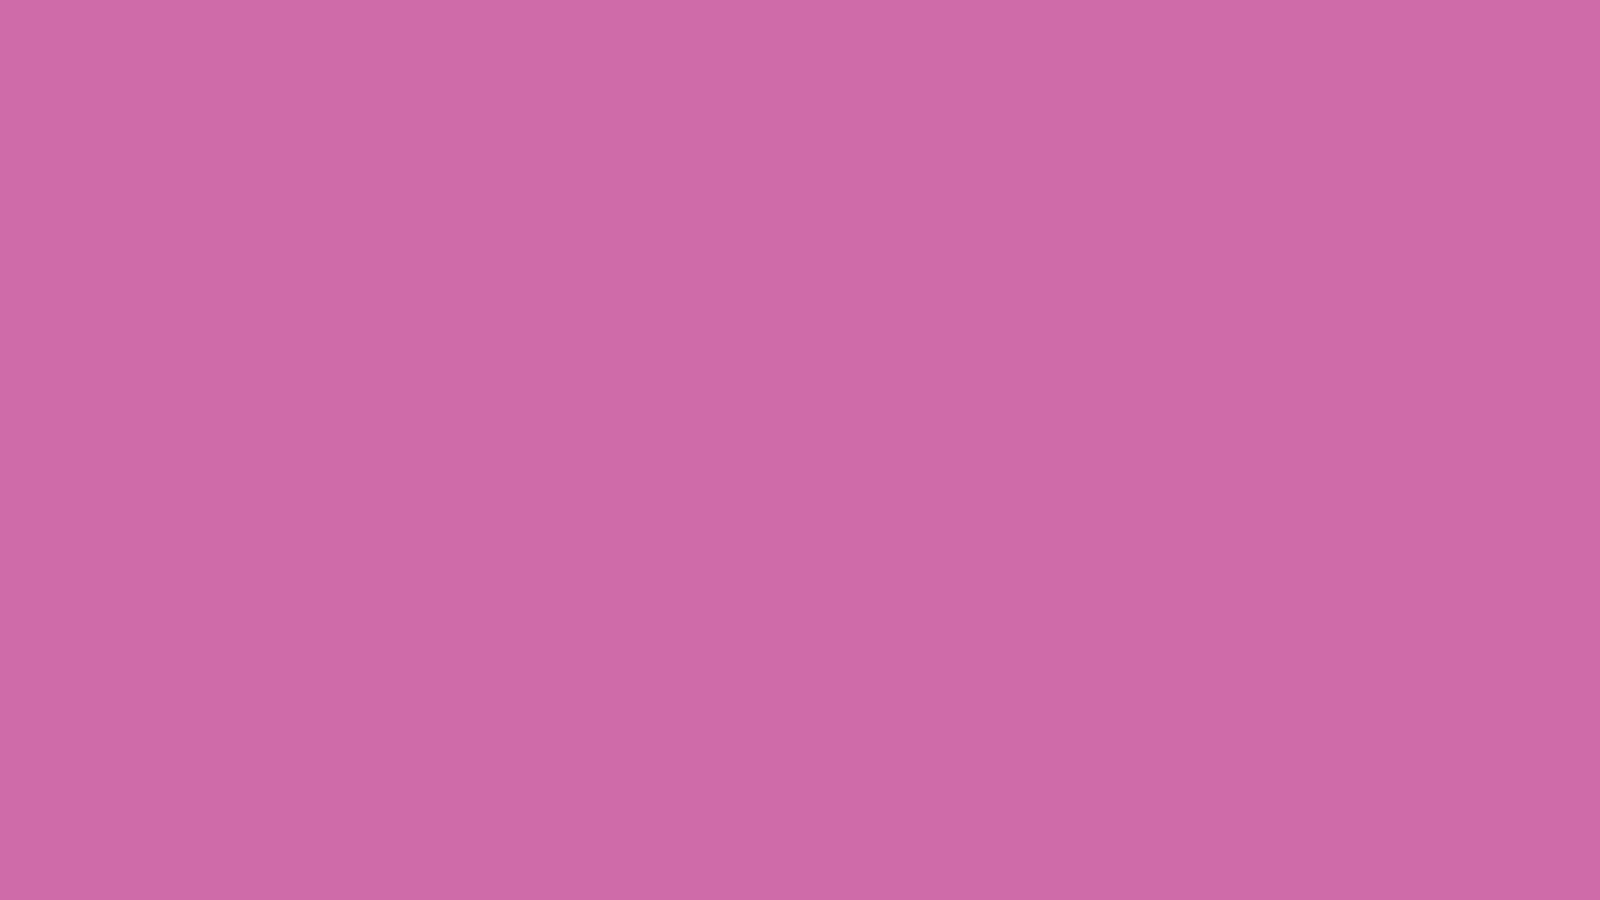 1600x900 Super Pink Solid Color Background